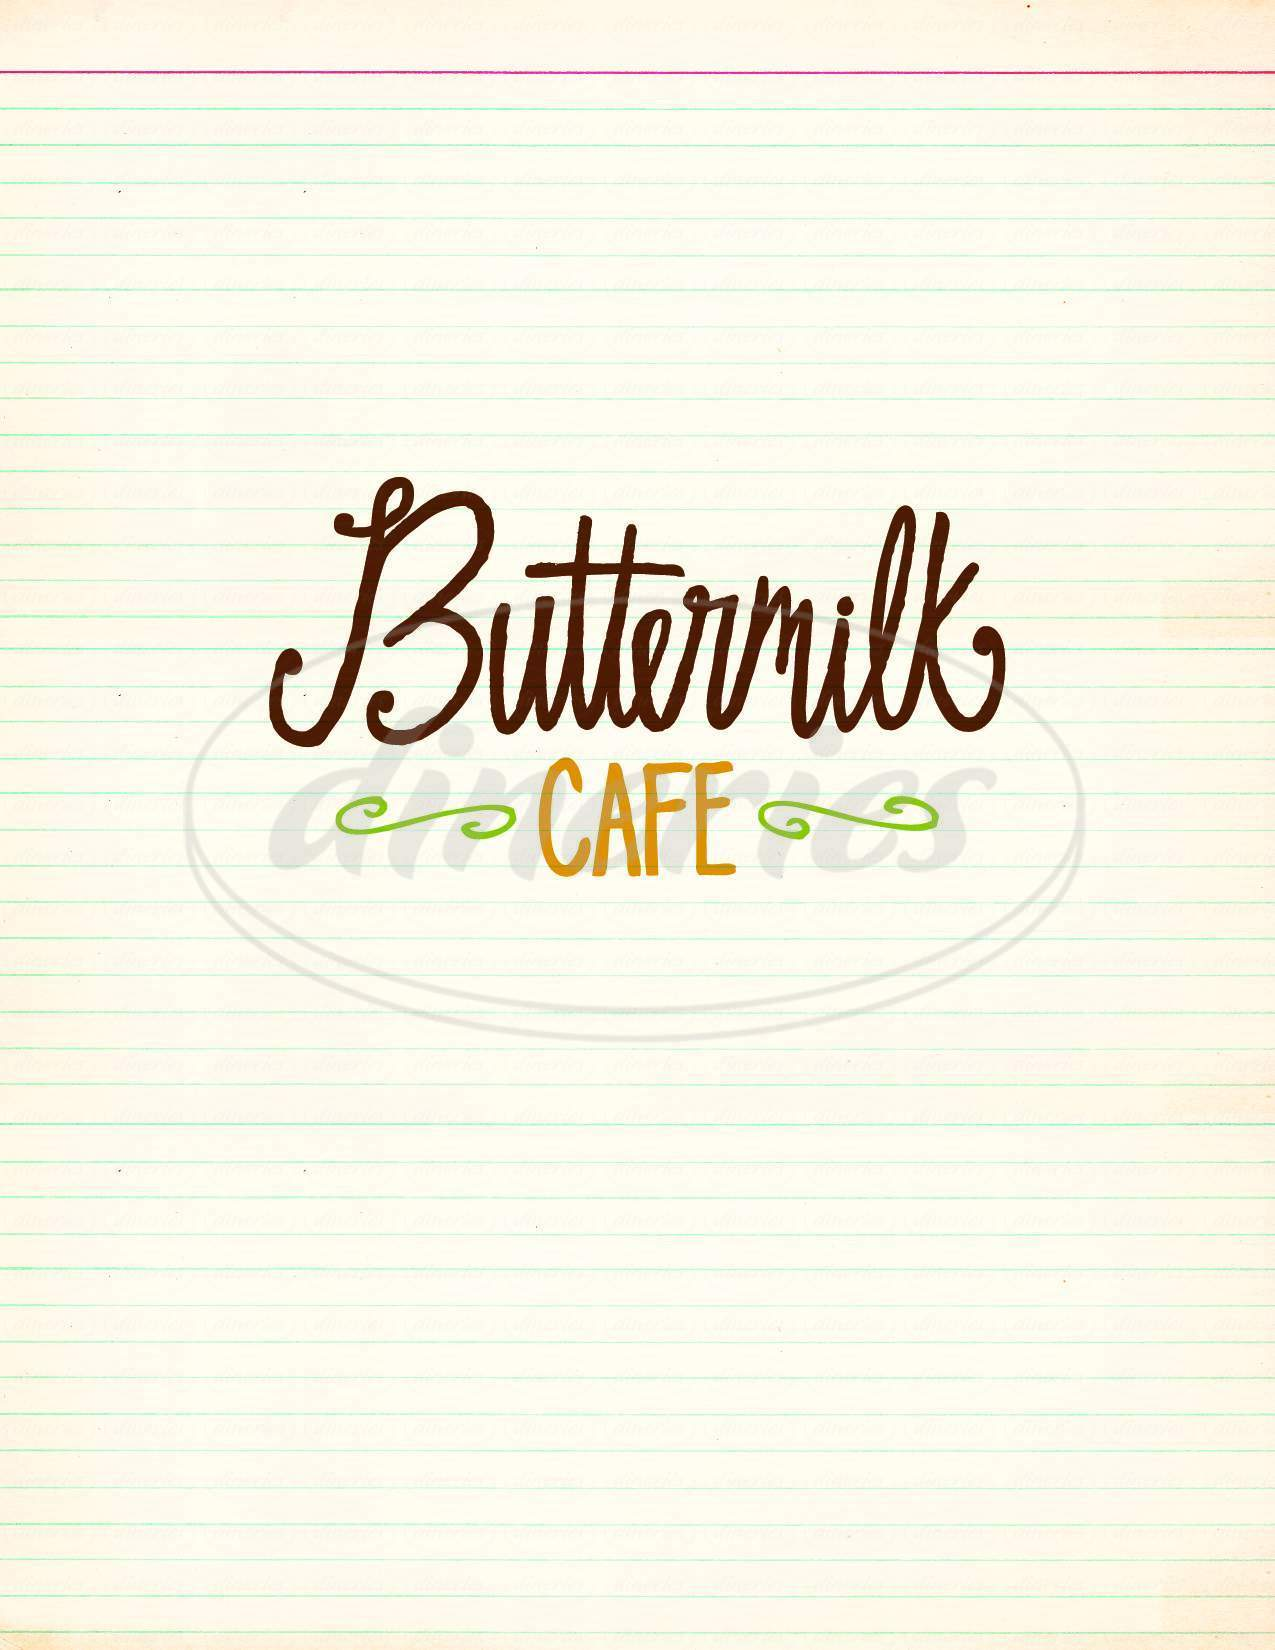 menu for The Buttermilk Cafe